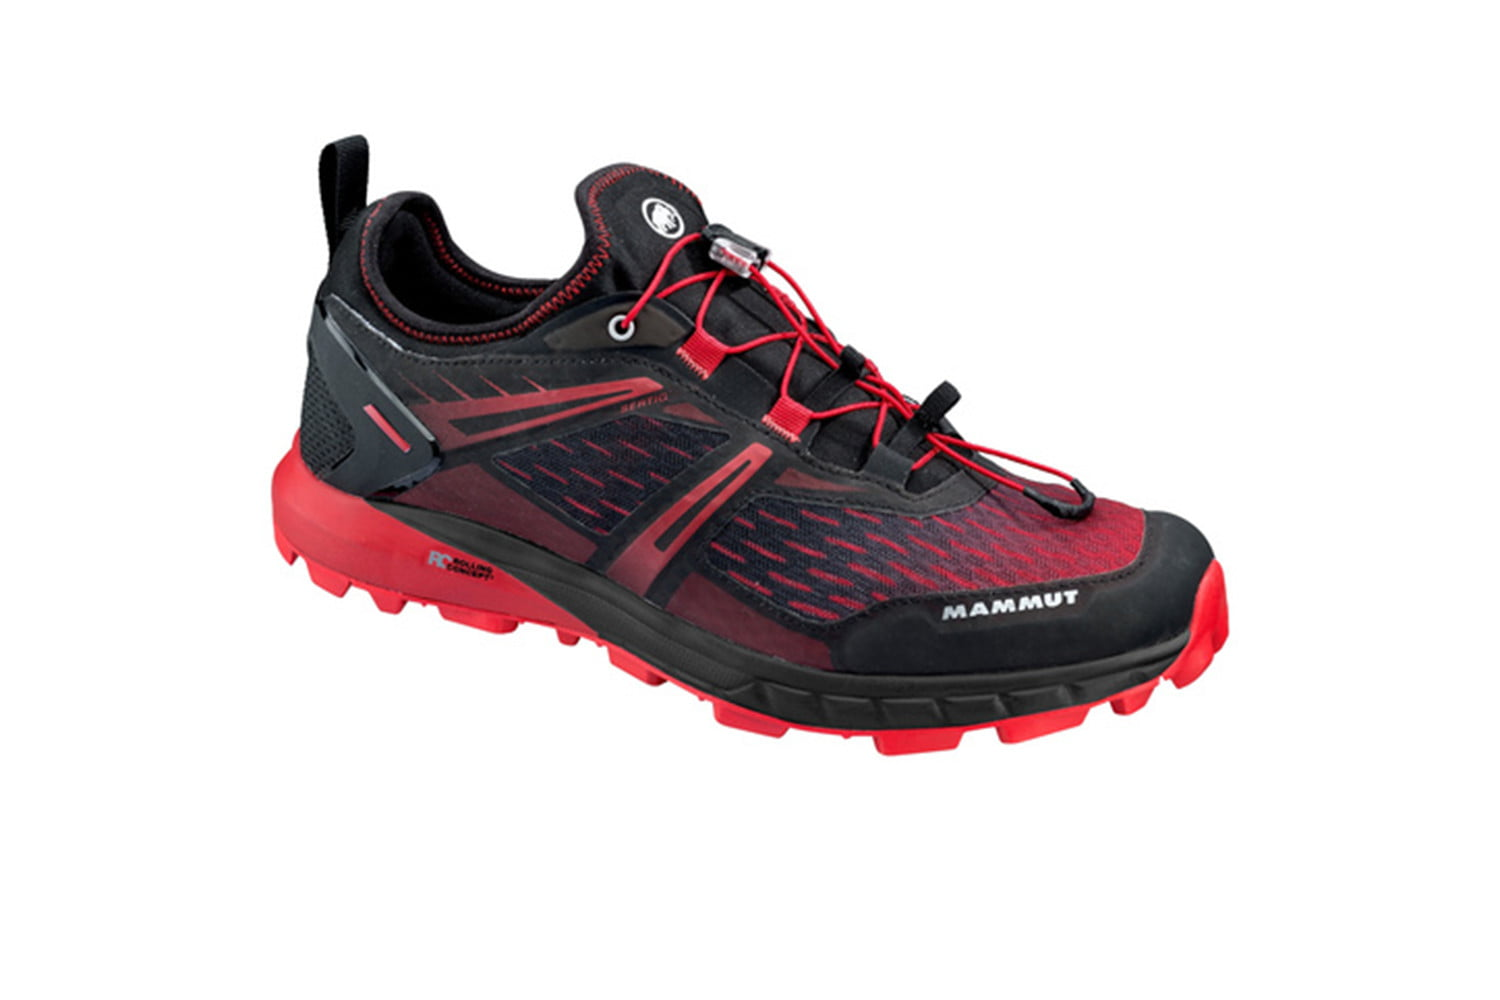 Best Low Heel Drop Trail Running Shoes